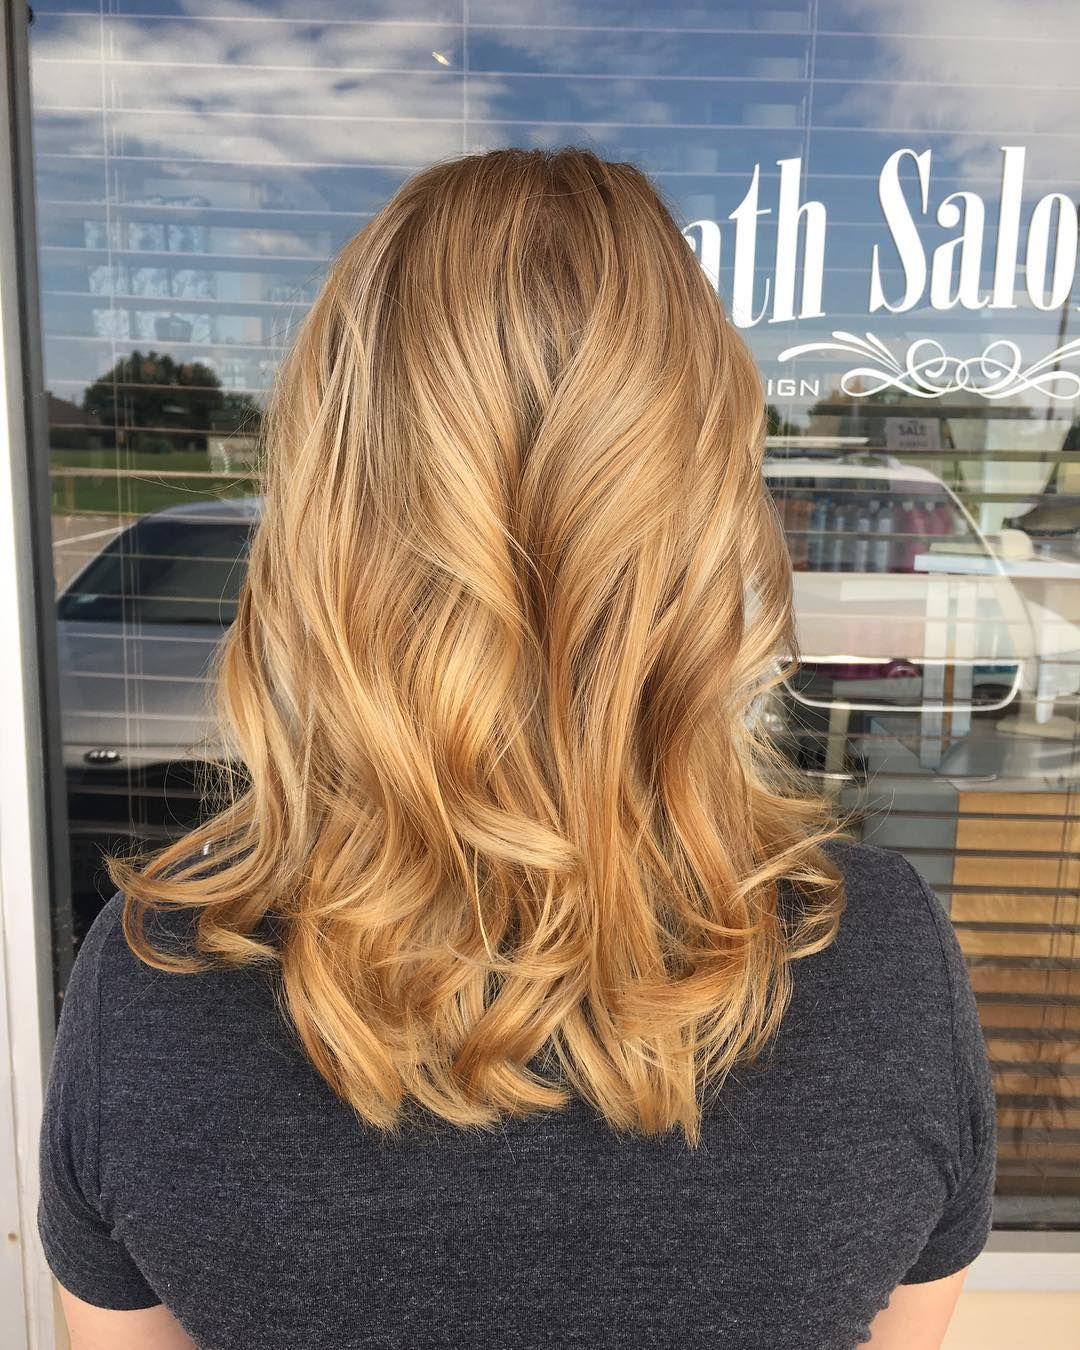 Long Wavy Honey Blonde Balayage Highlights Strawberry Blonde Hair